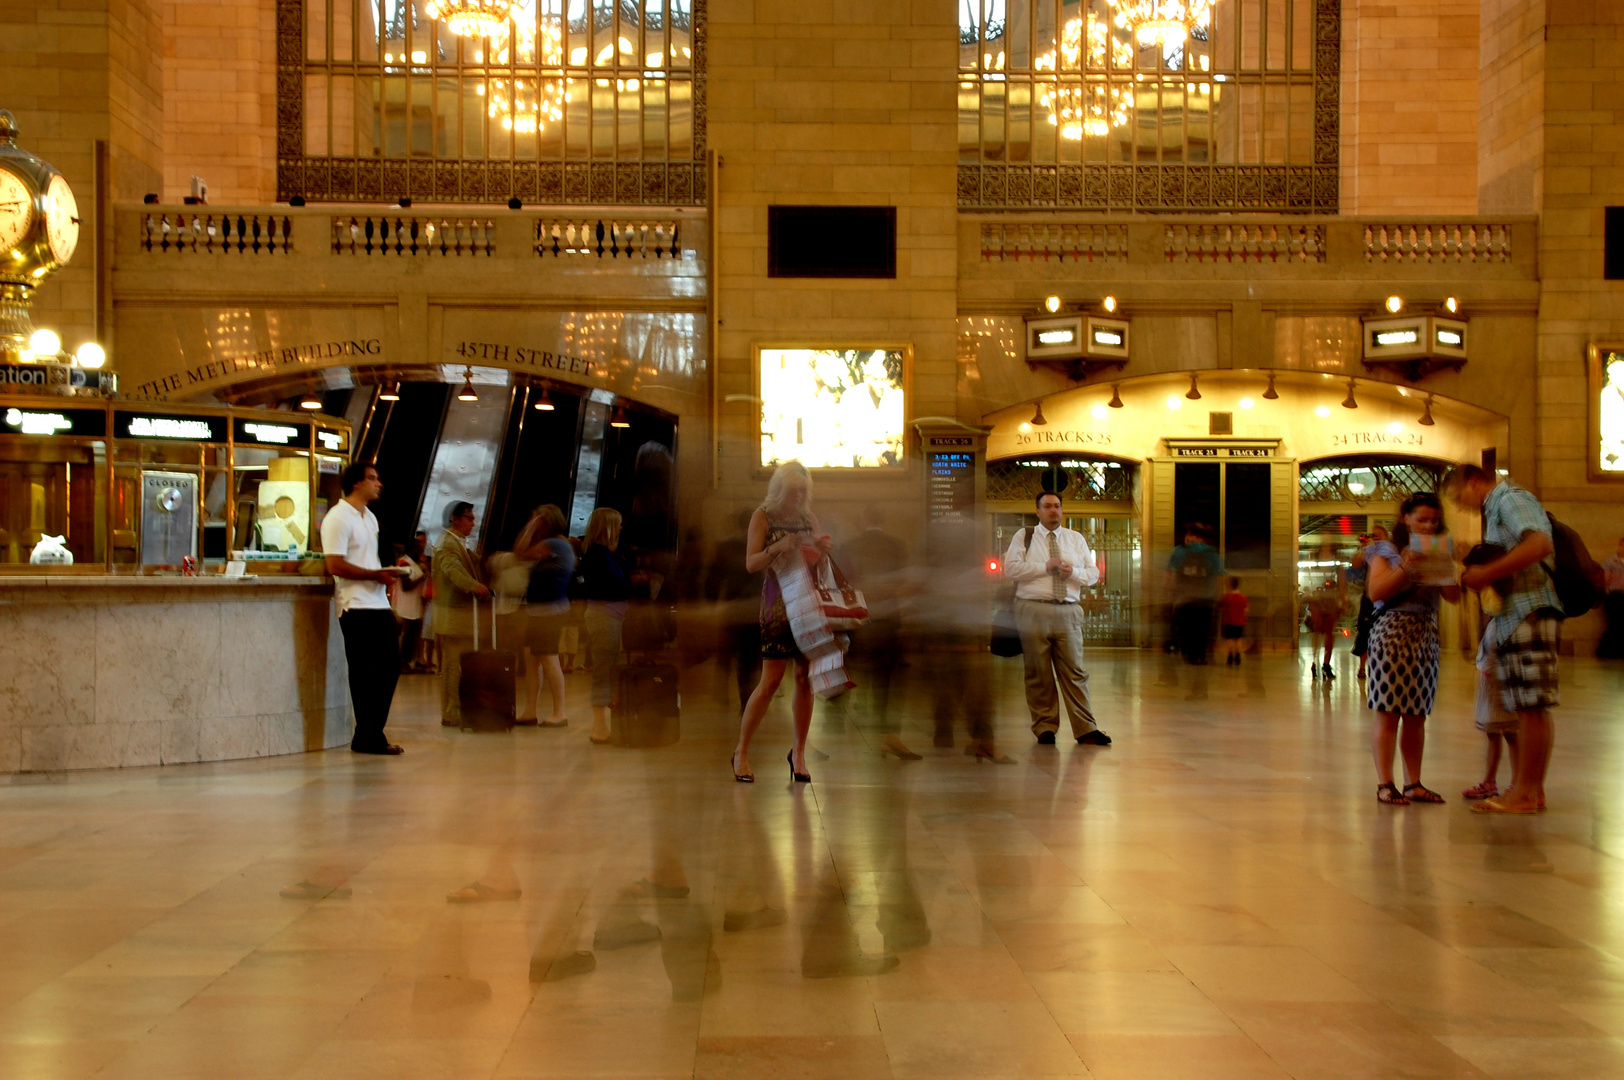 NYC Grand Central Station 1